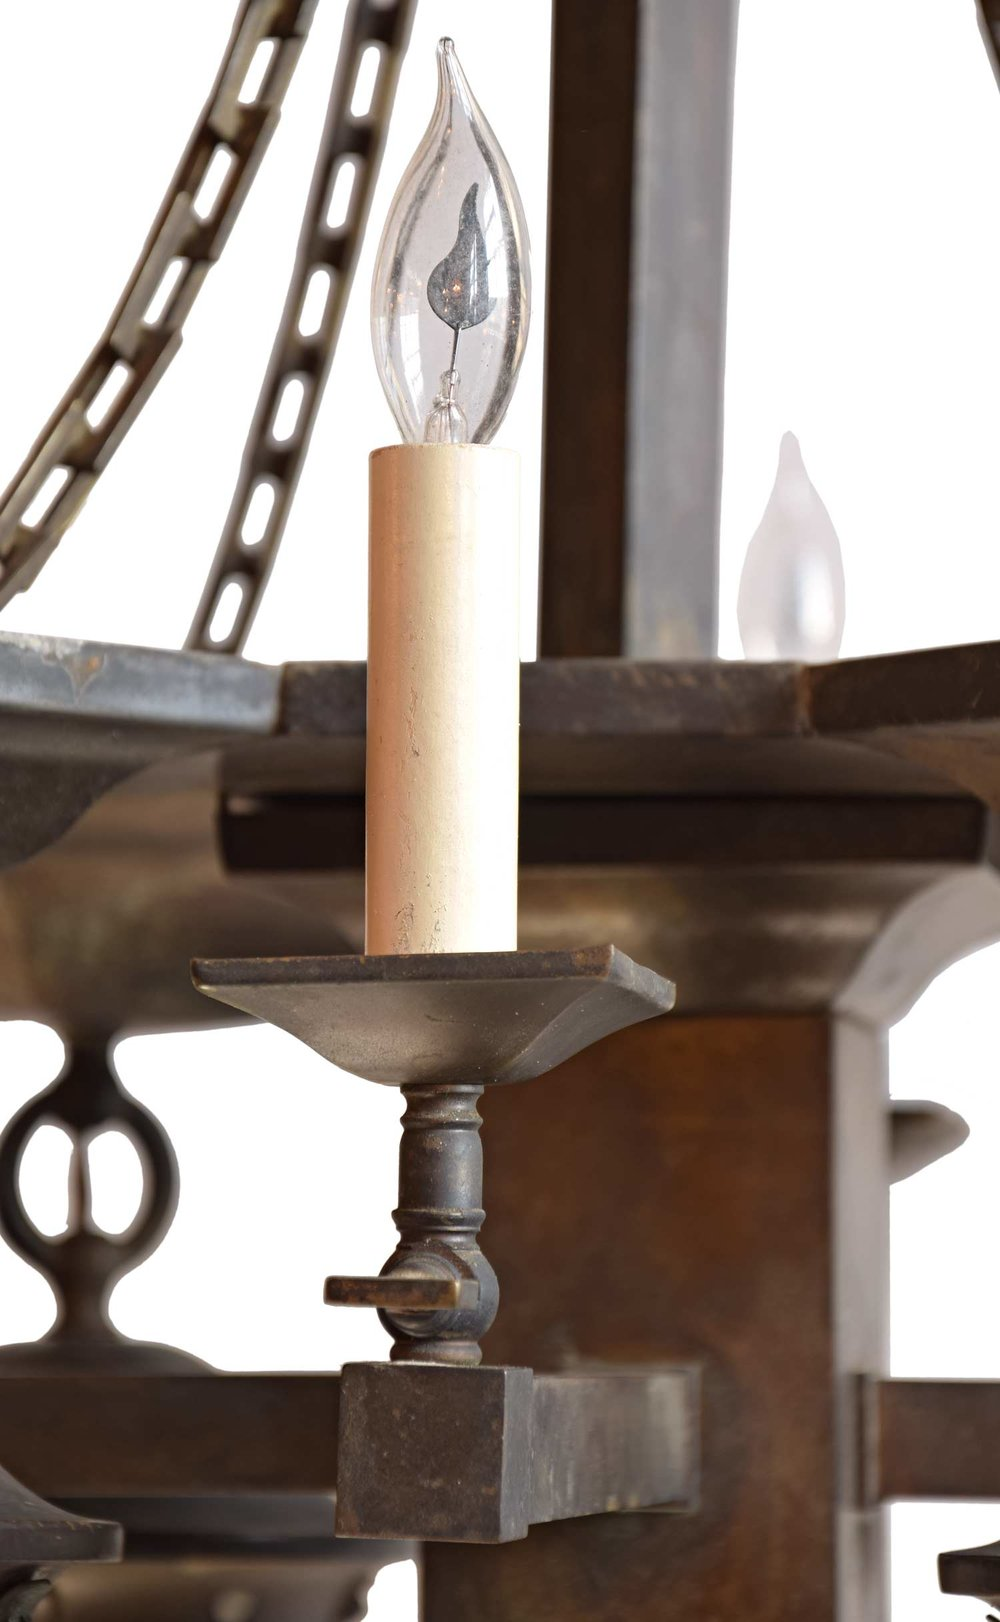 45884-gas-electric-mission-chandelier-candle-detail.jpg